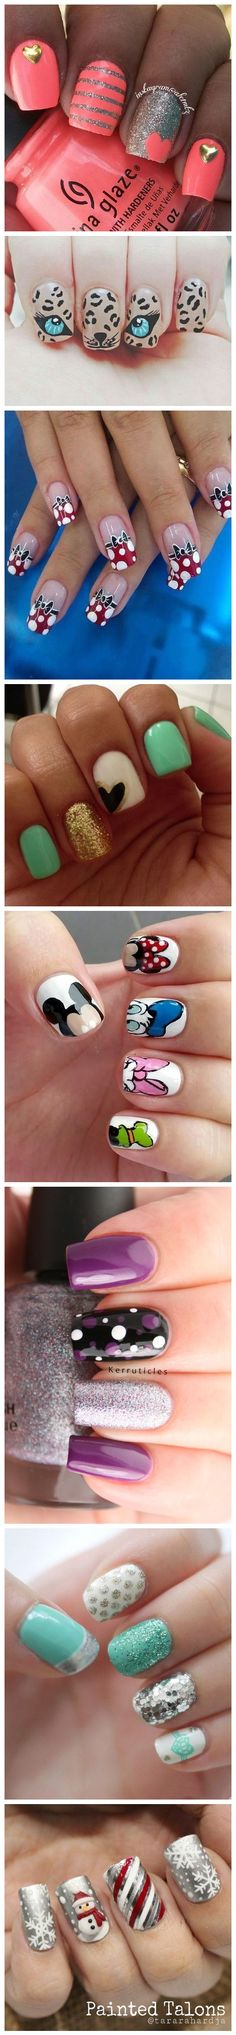 Best Nail Design Ideas